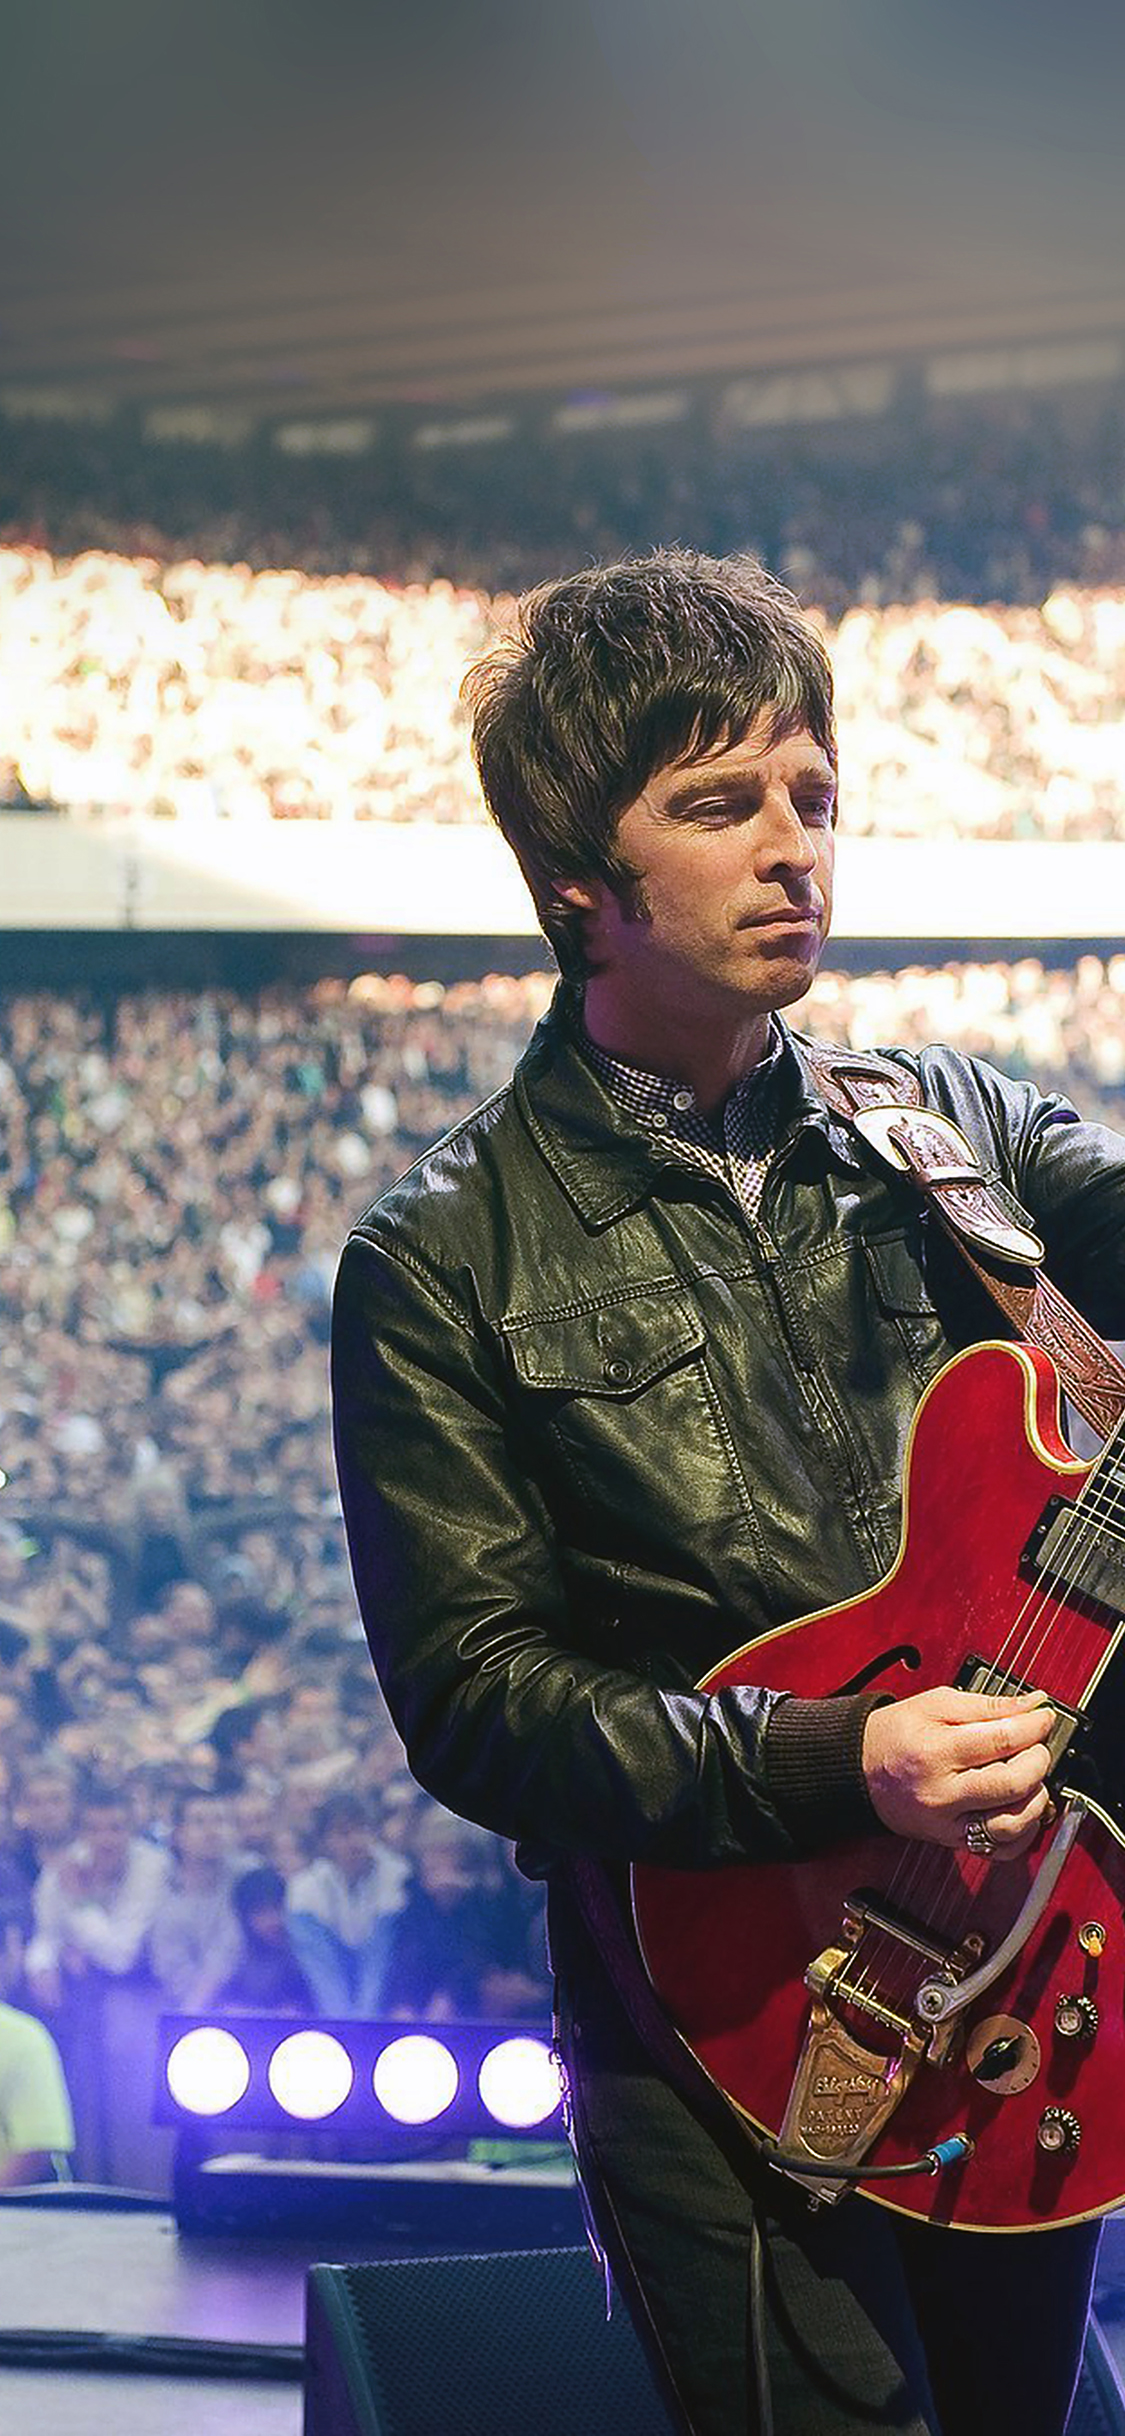 hd93-noel-oasis-music-band-celebrity - Papers.co Oasis Band Wallpaper